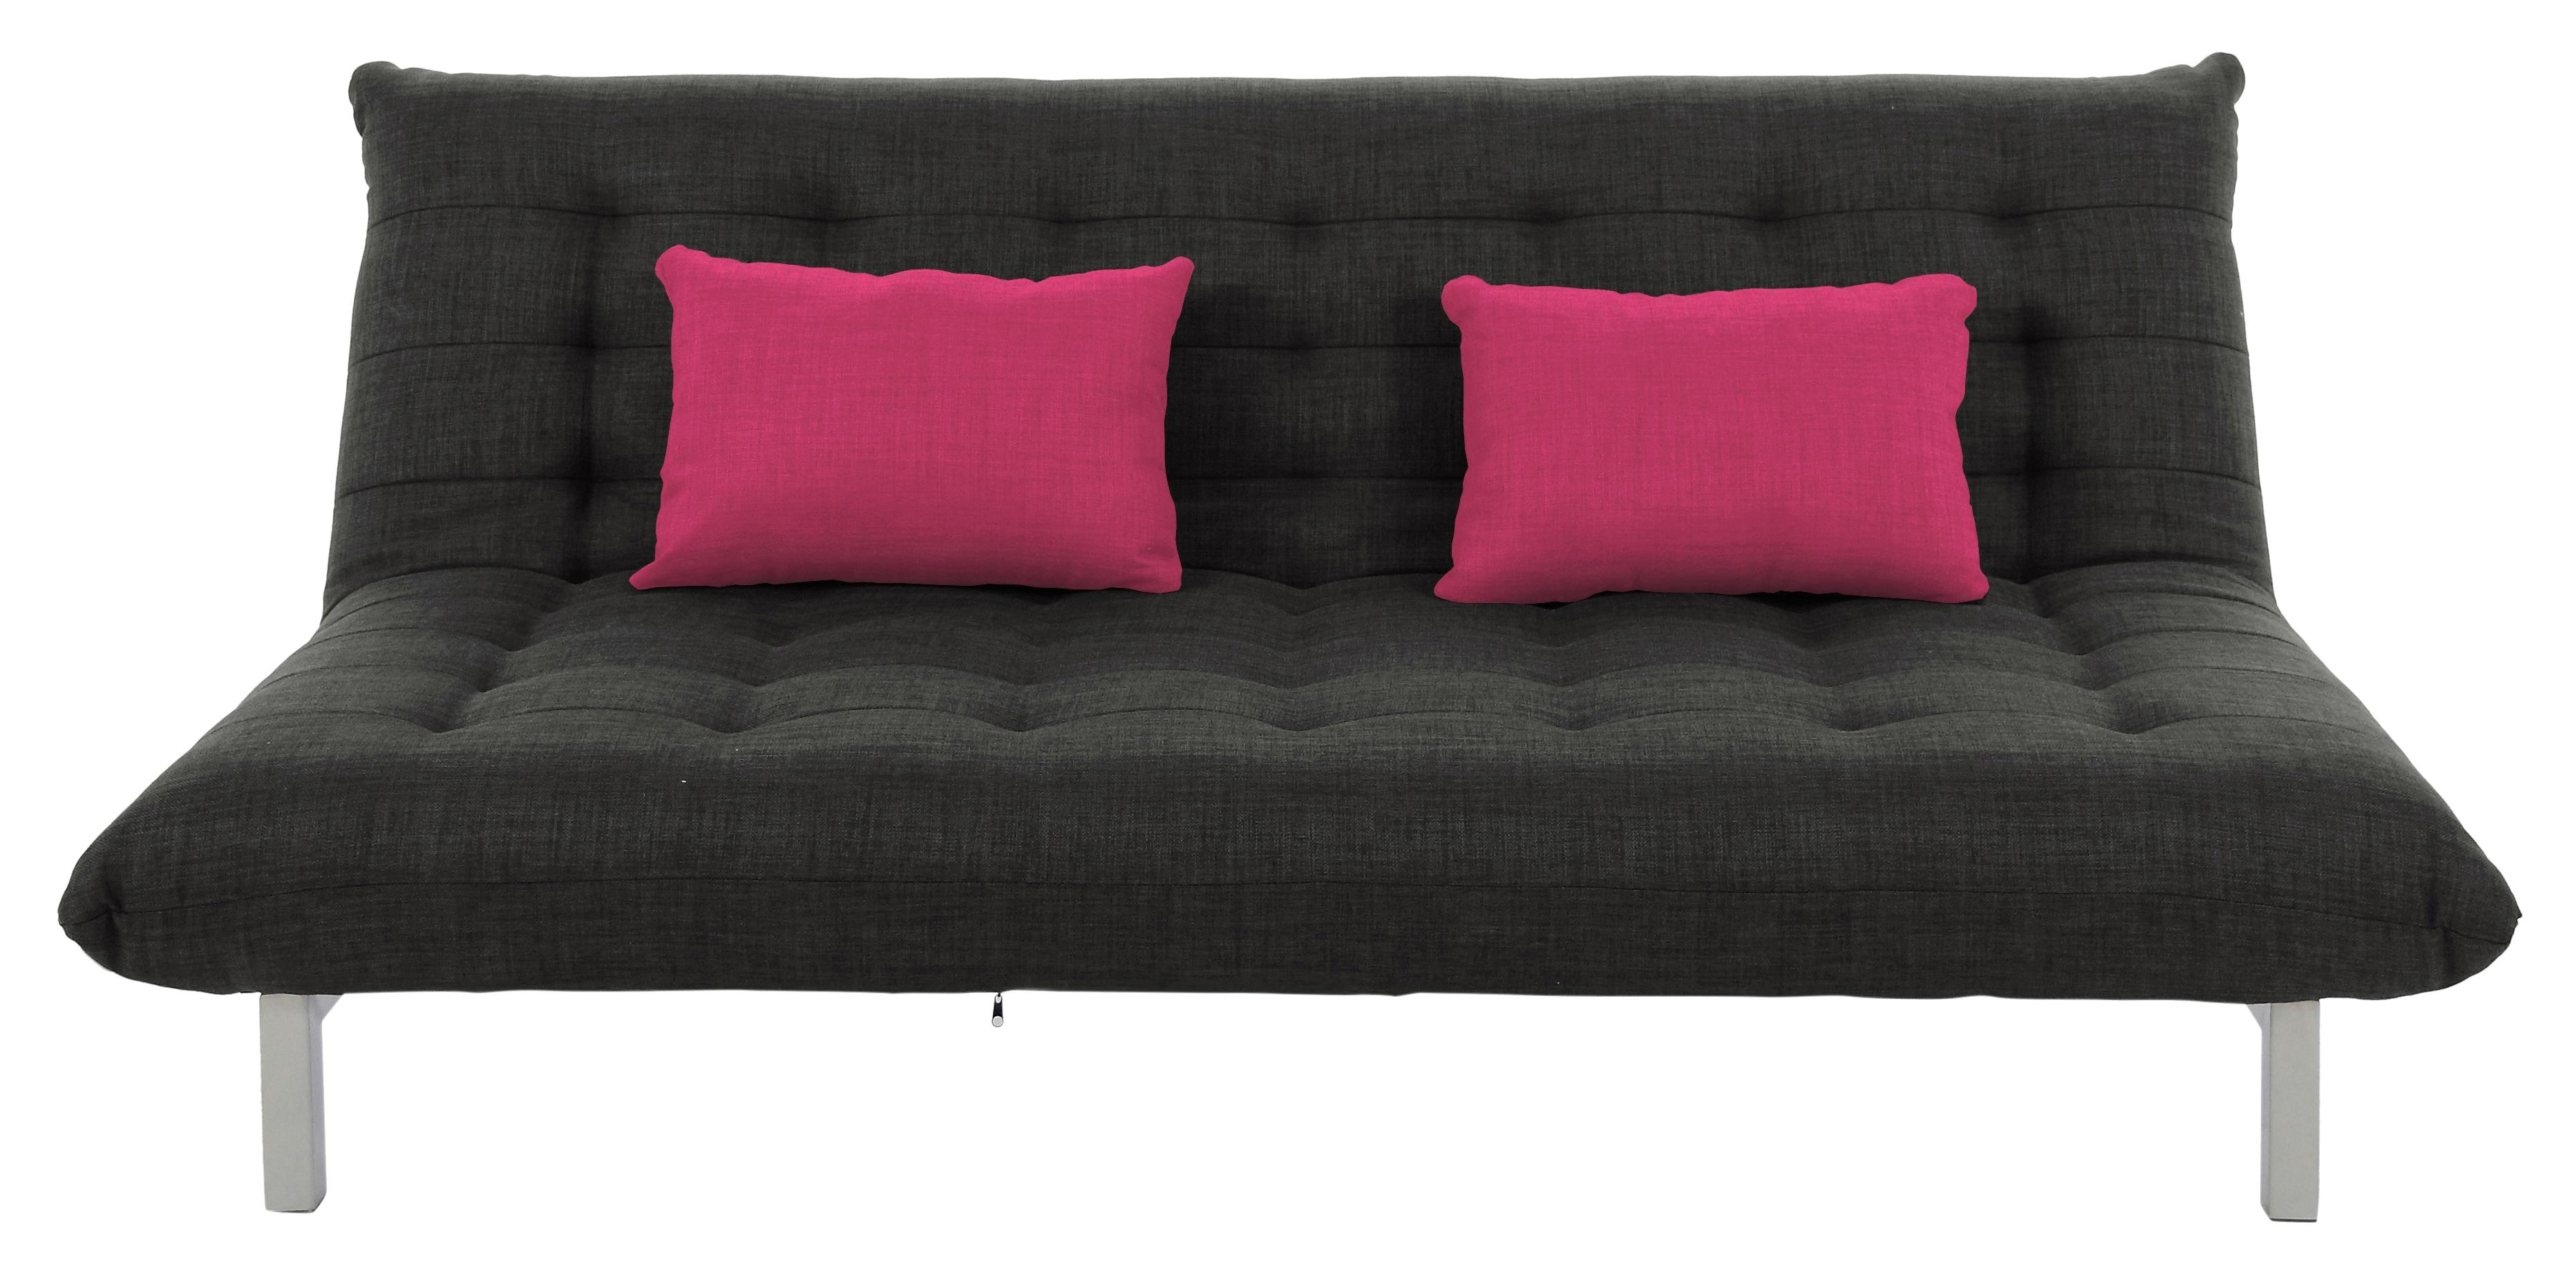 Actona Sofa Bed u2013 Hereo Sofa